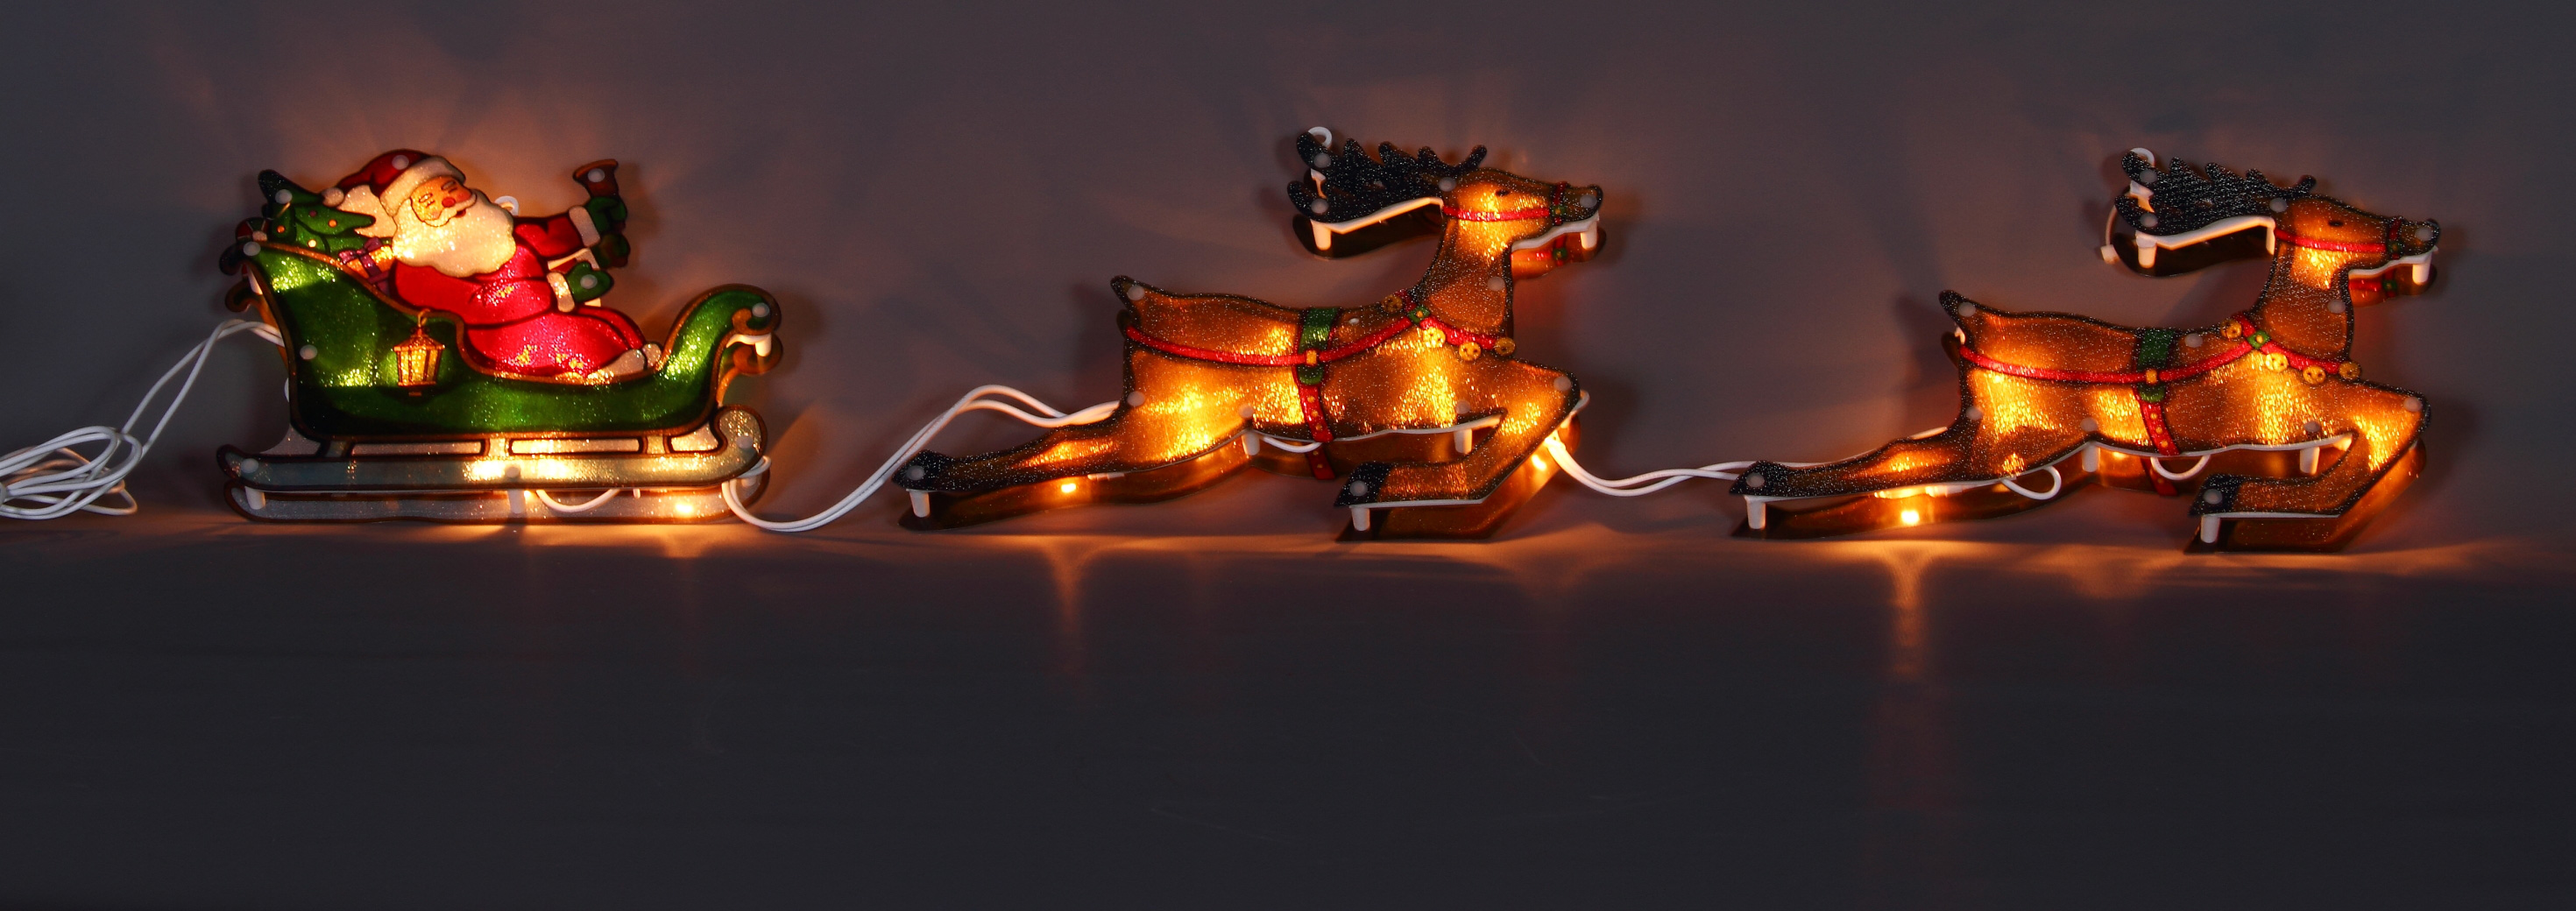 Santa in sleigh x 2 reindeer silhouette christmas lights christmas santa in sleigh x 2 reindeer silhouette christmas lights aloadofball Choice Image